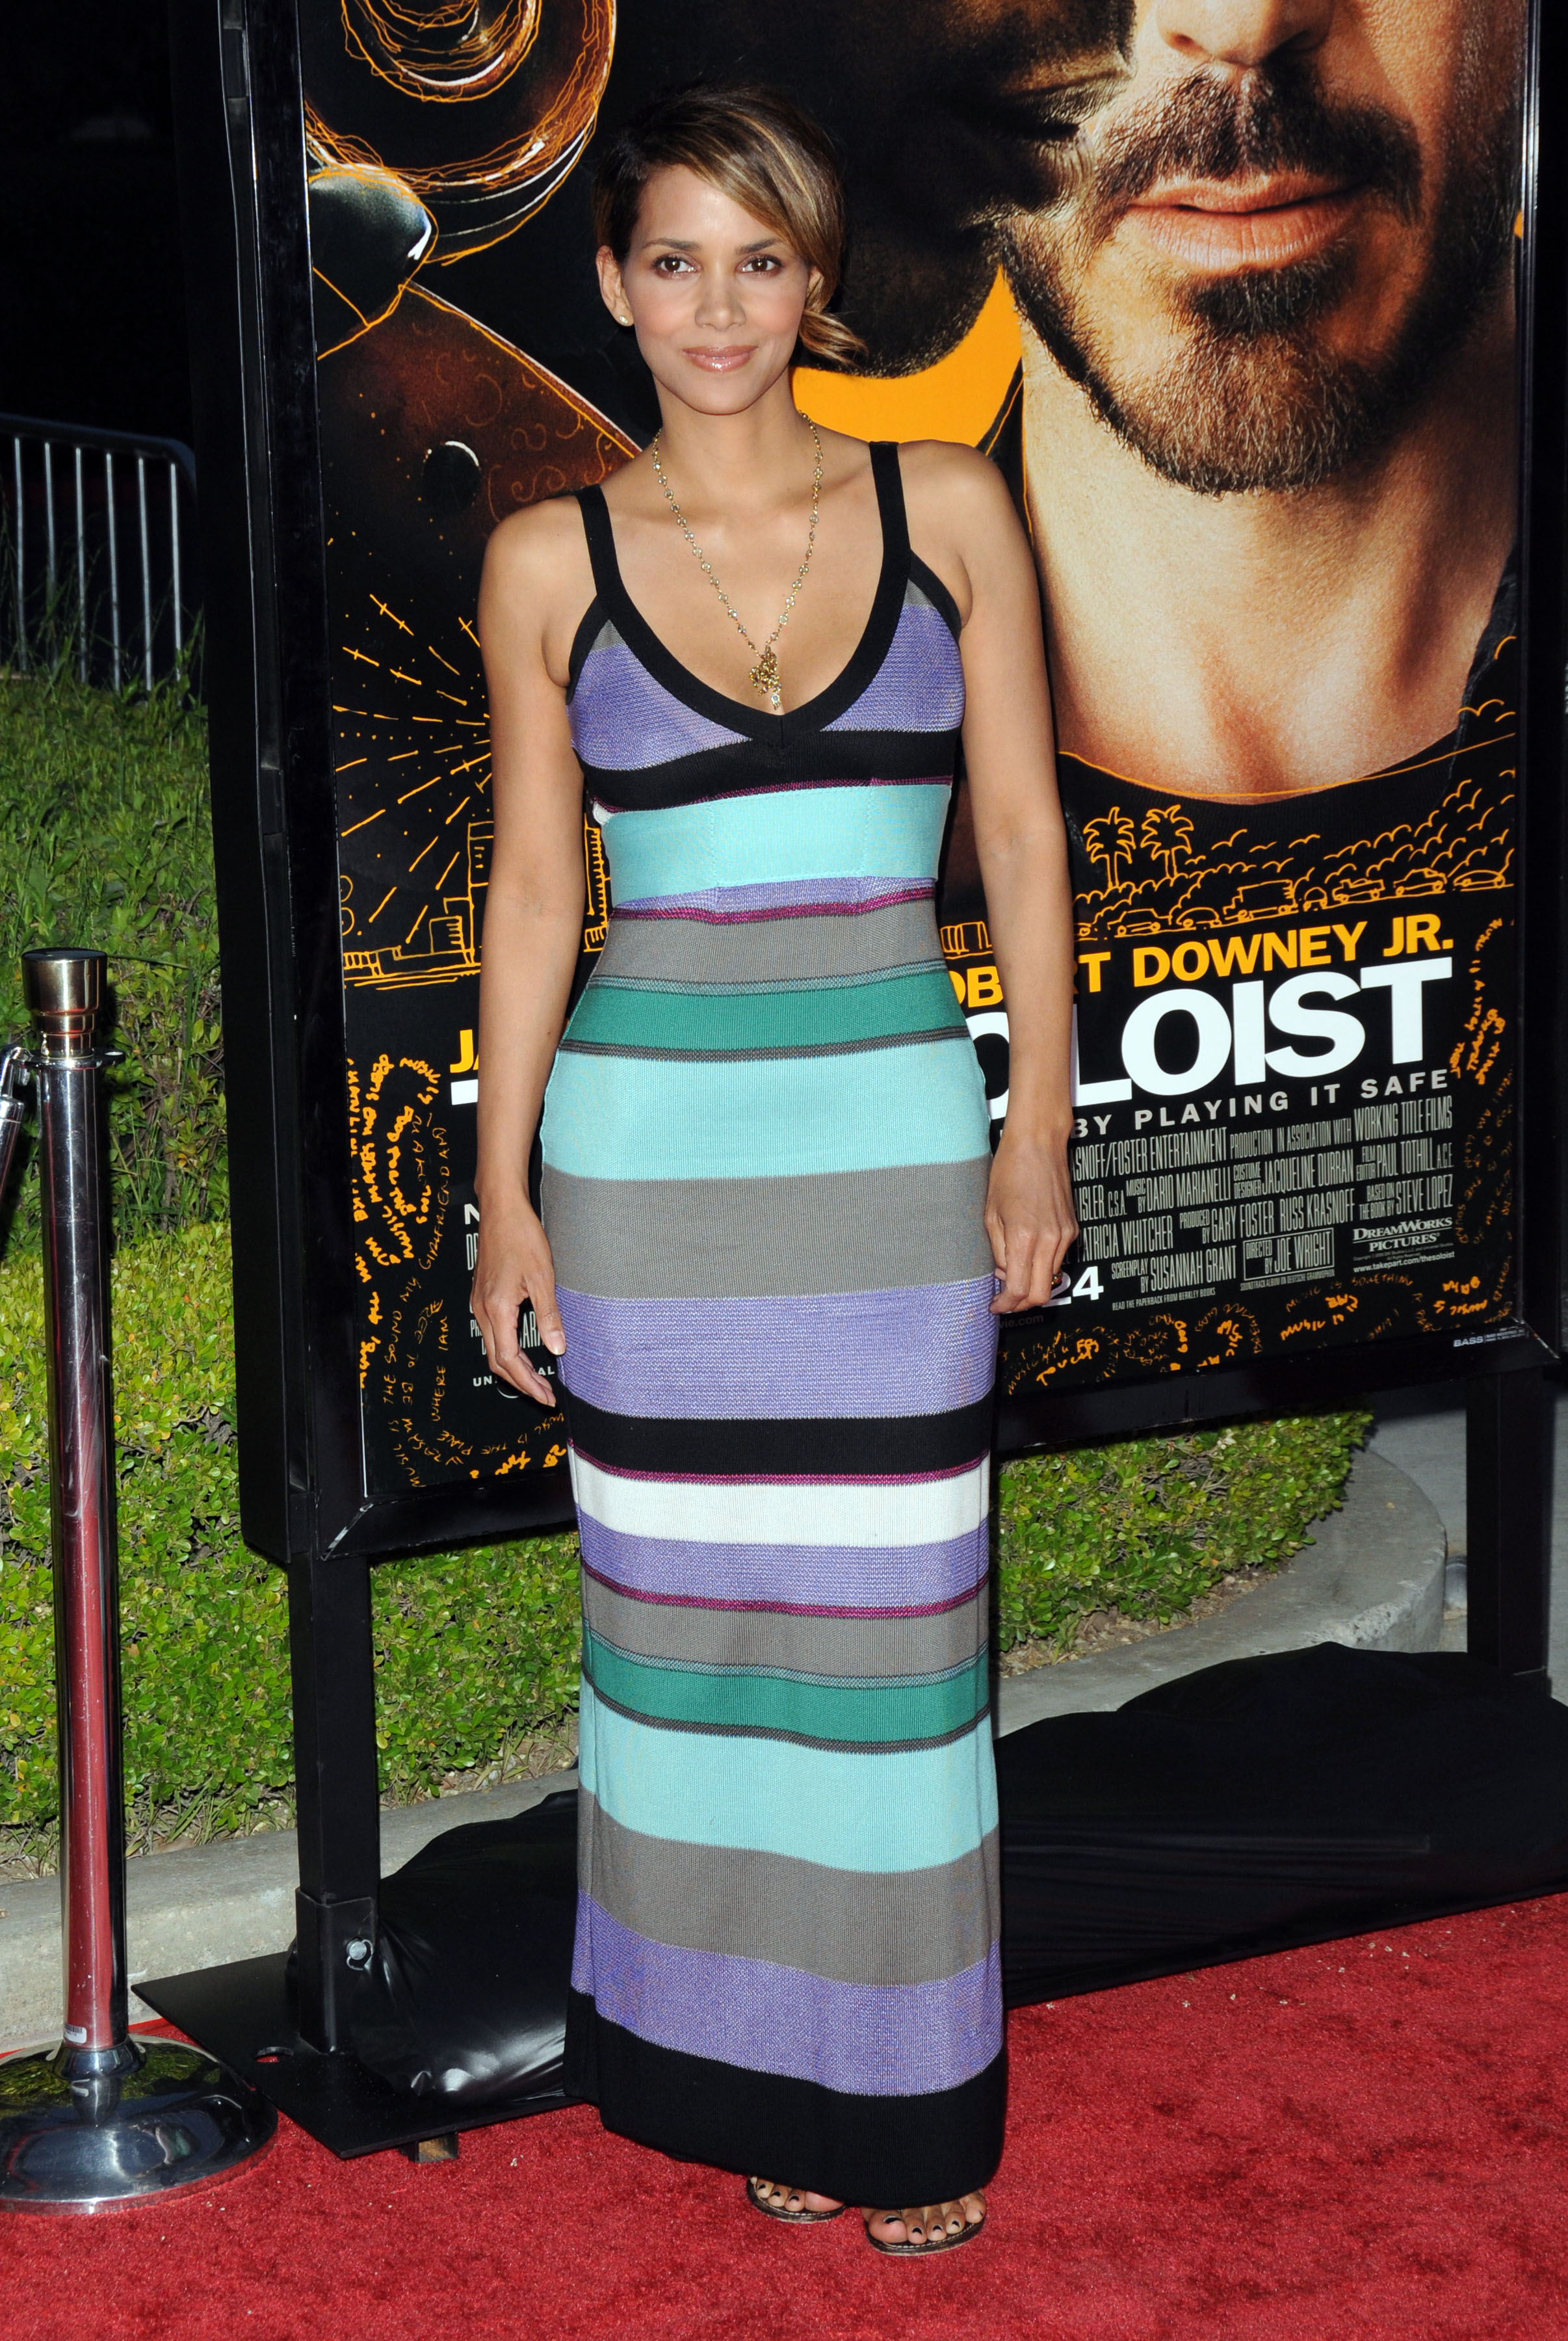 65512_Halle_Berry_The_Soloist_premiere_in_Los_Angeles_64_122_580lo.jpg